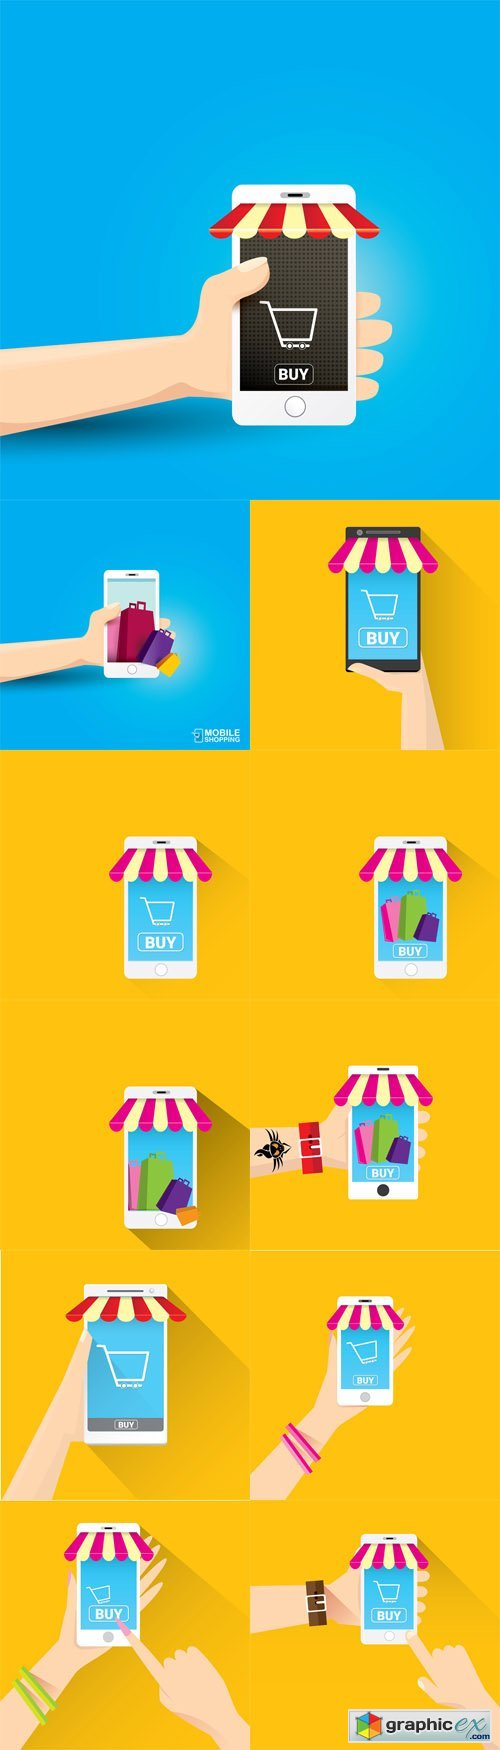 Online Mobile Shopping Concept Backgrounds